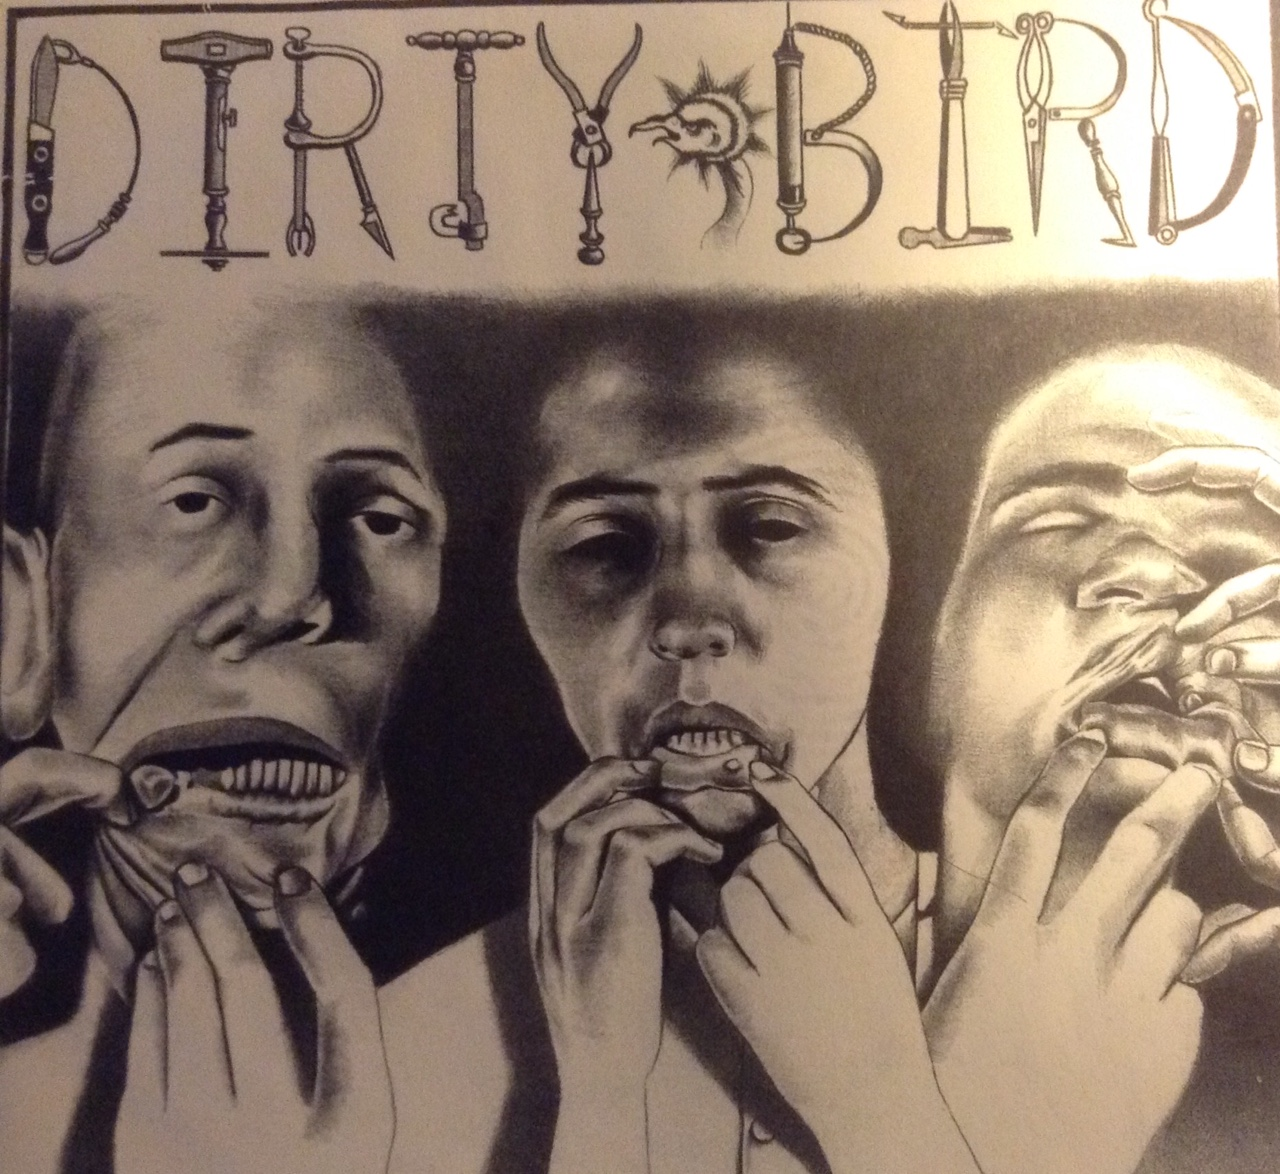 The Dirty Bird 45 - We recorded it in Seattle in less than one hour because, hey man, we were poor.